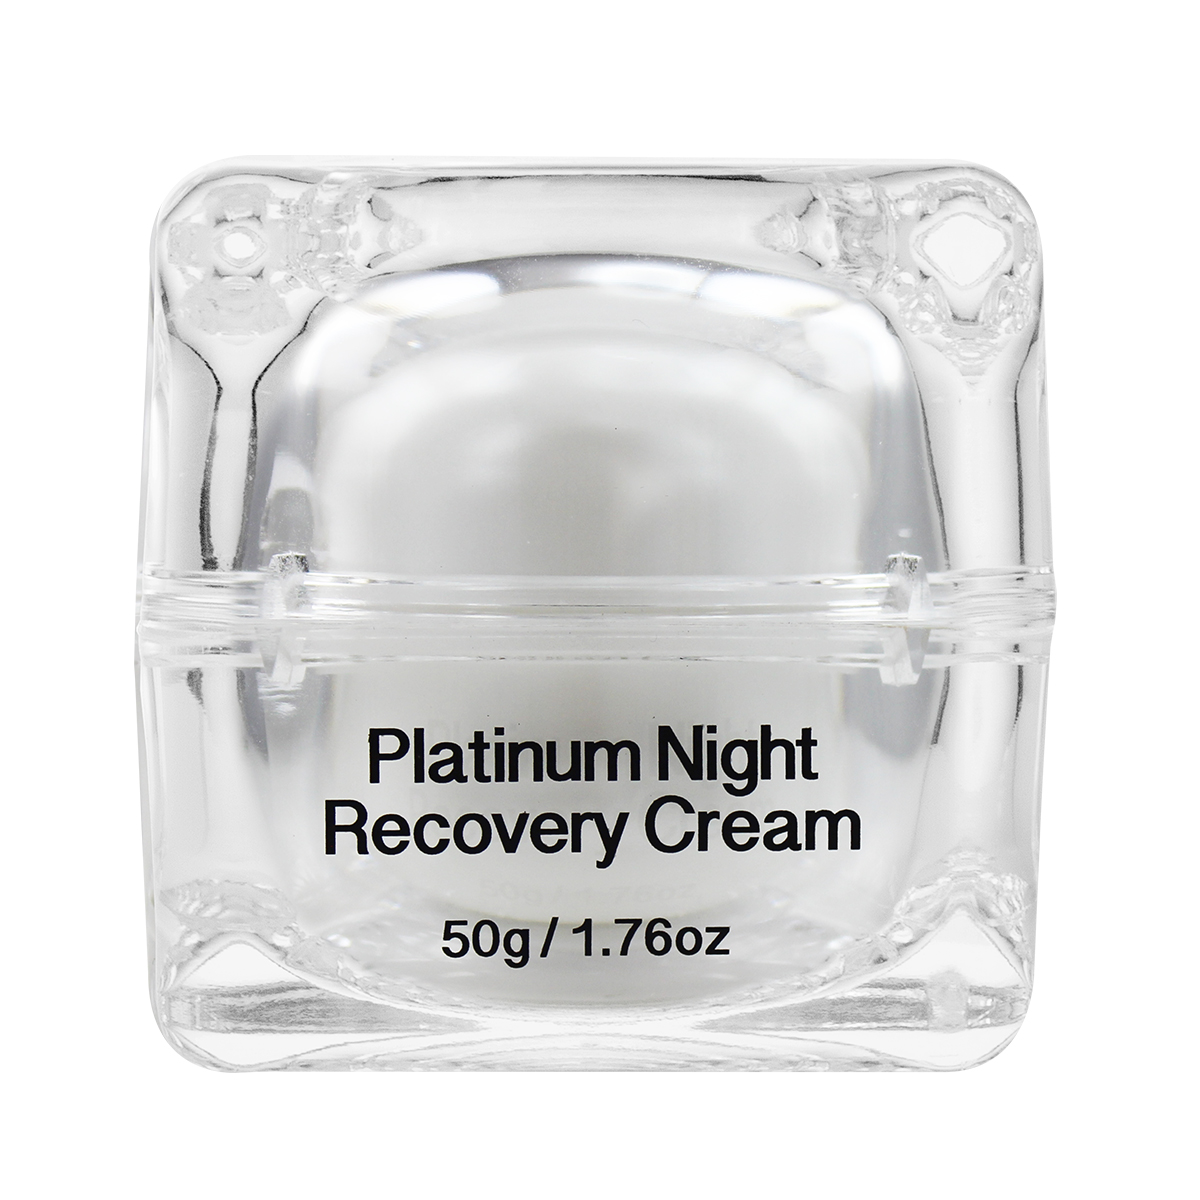 Platinum Night Recovery Cream back